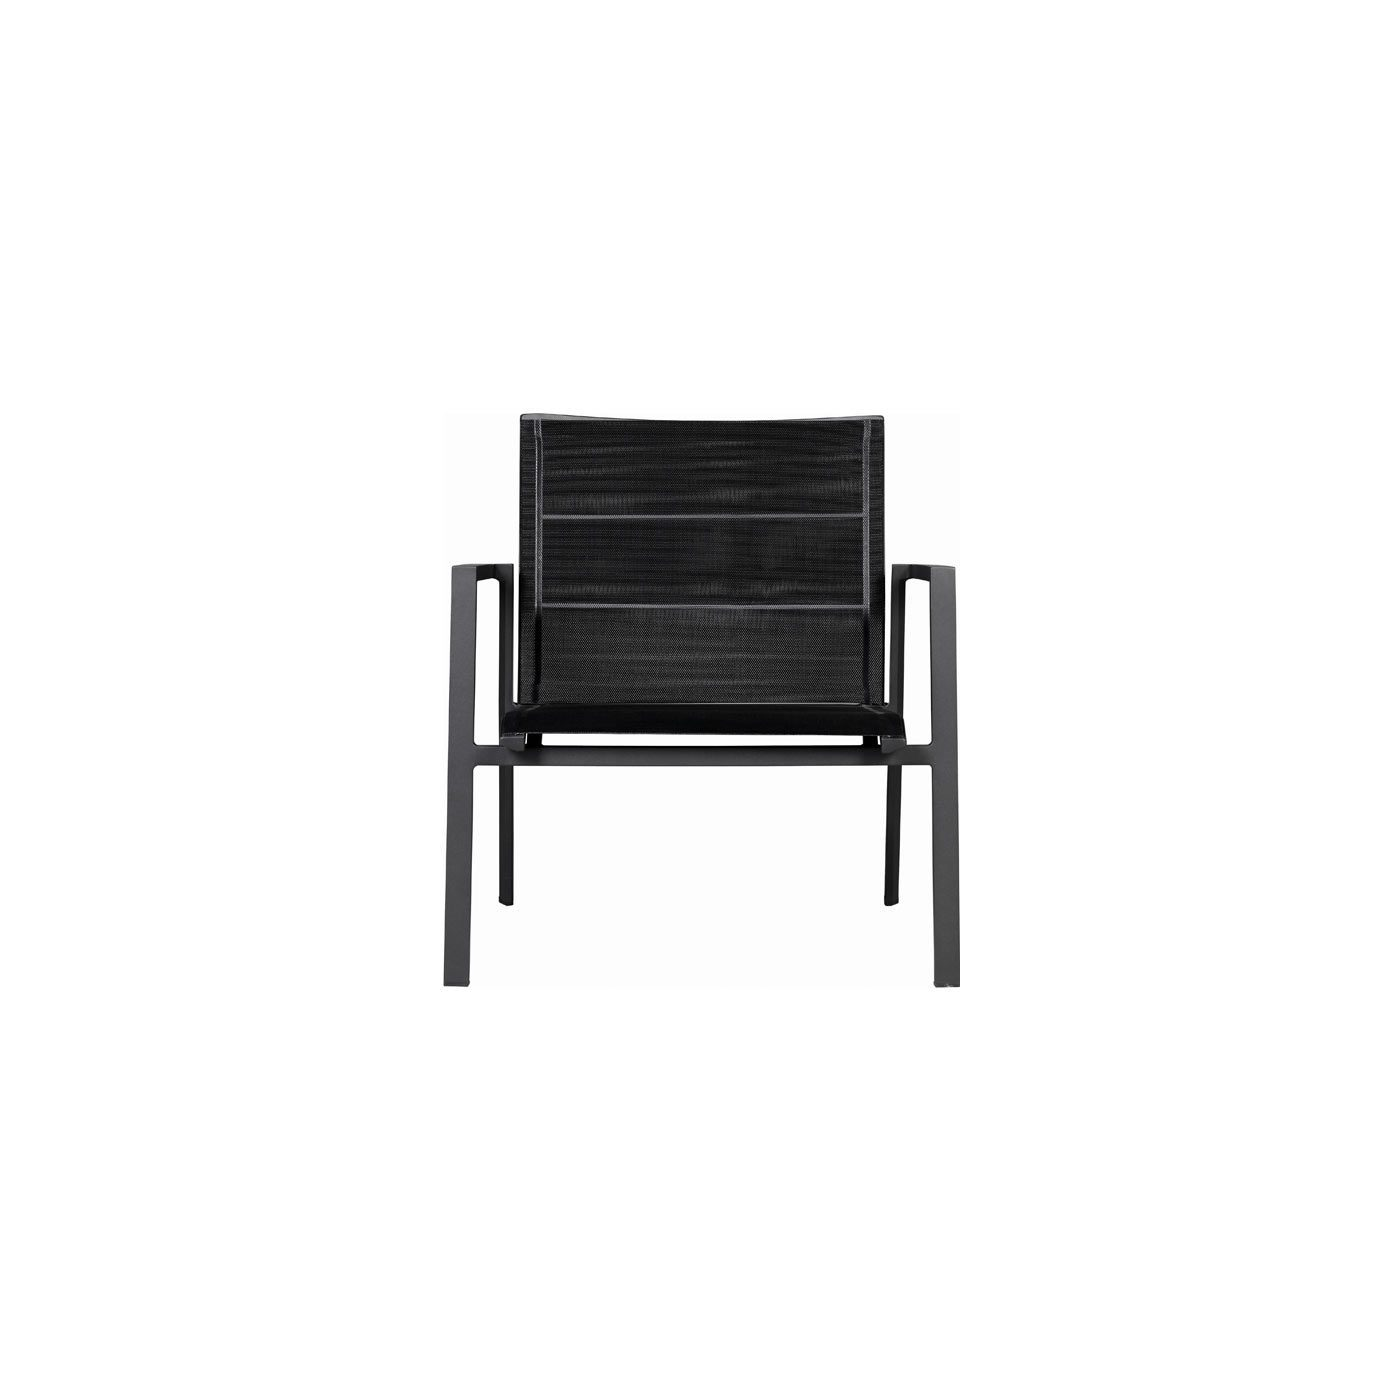 Swell Turin Lounge Chair Andrewgaddart Wooden Chair Designs For Living Room Andrewgaddartcom